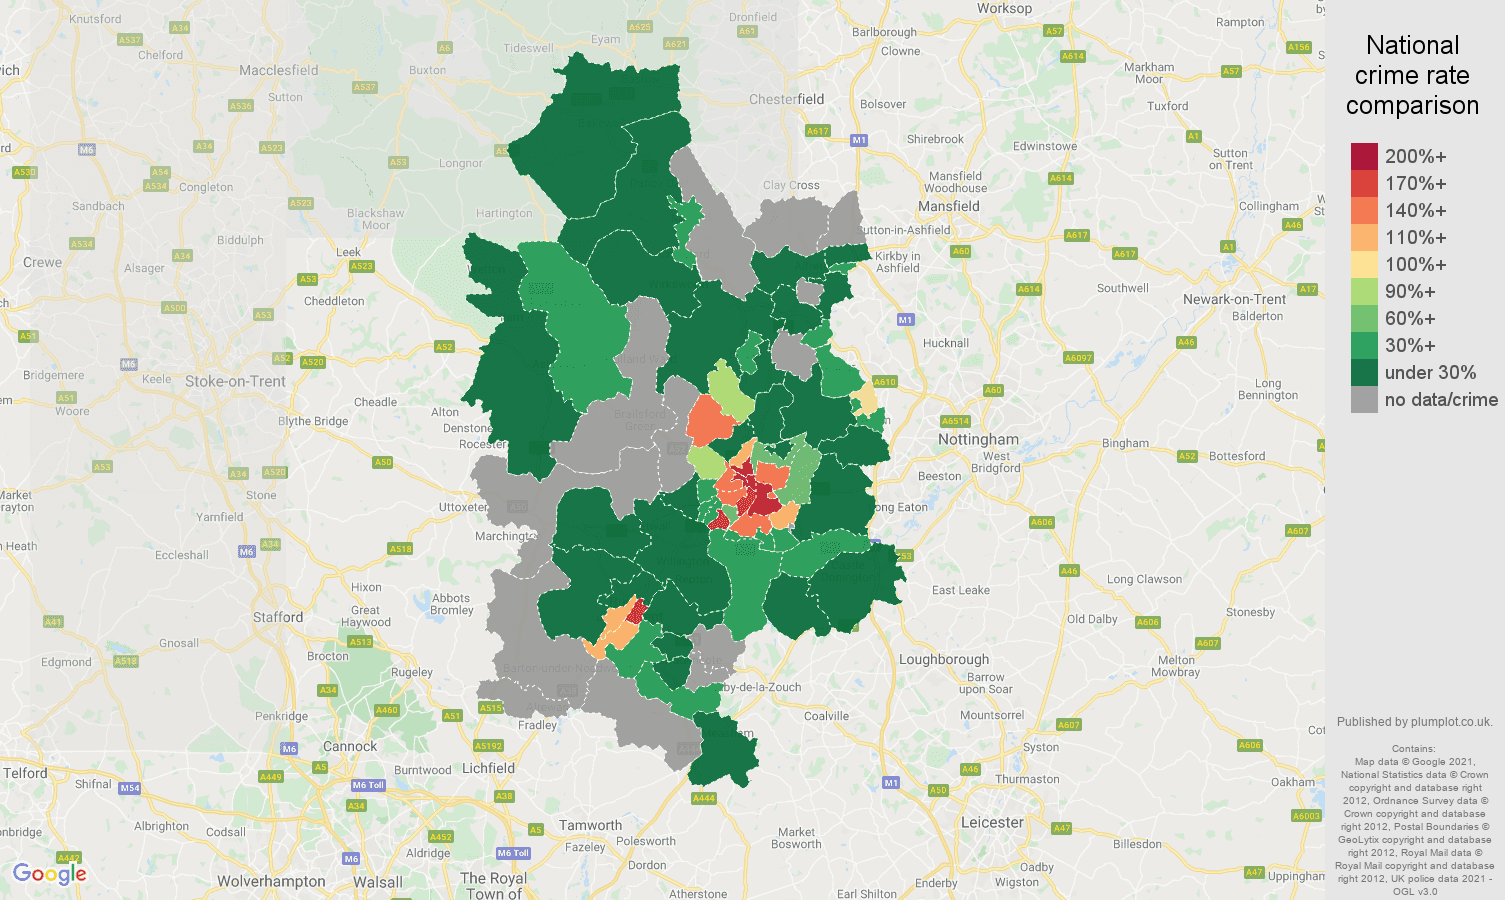 Derby bicycle theft crime rate comparison map